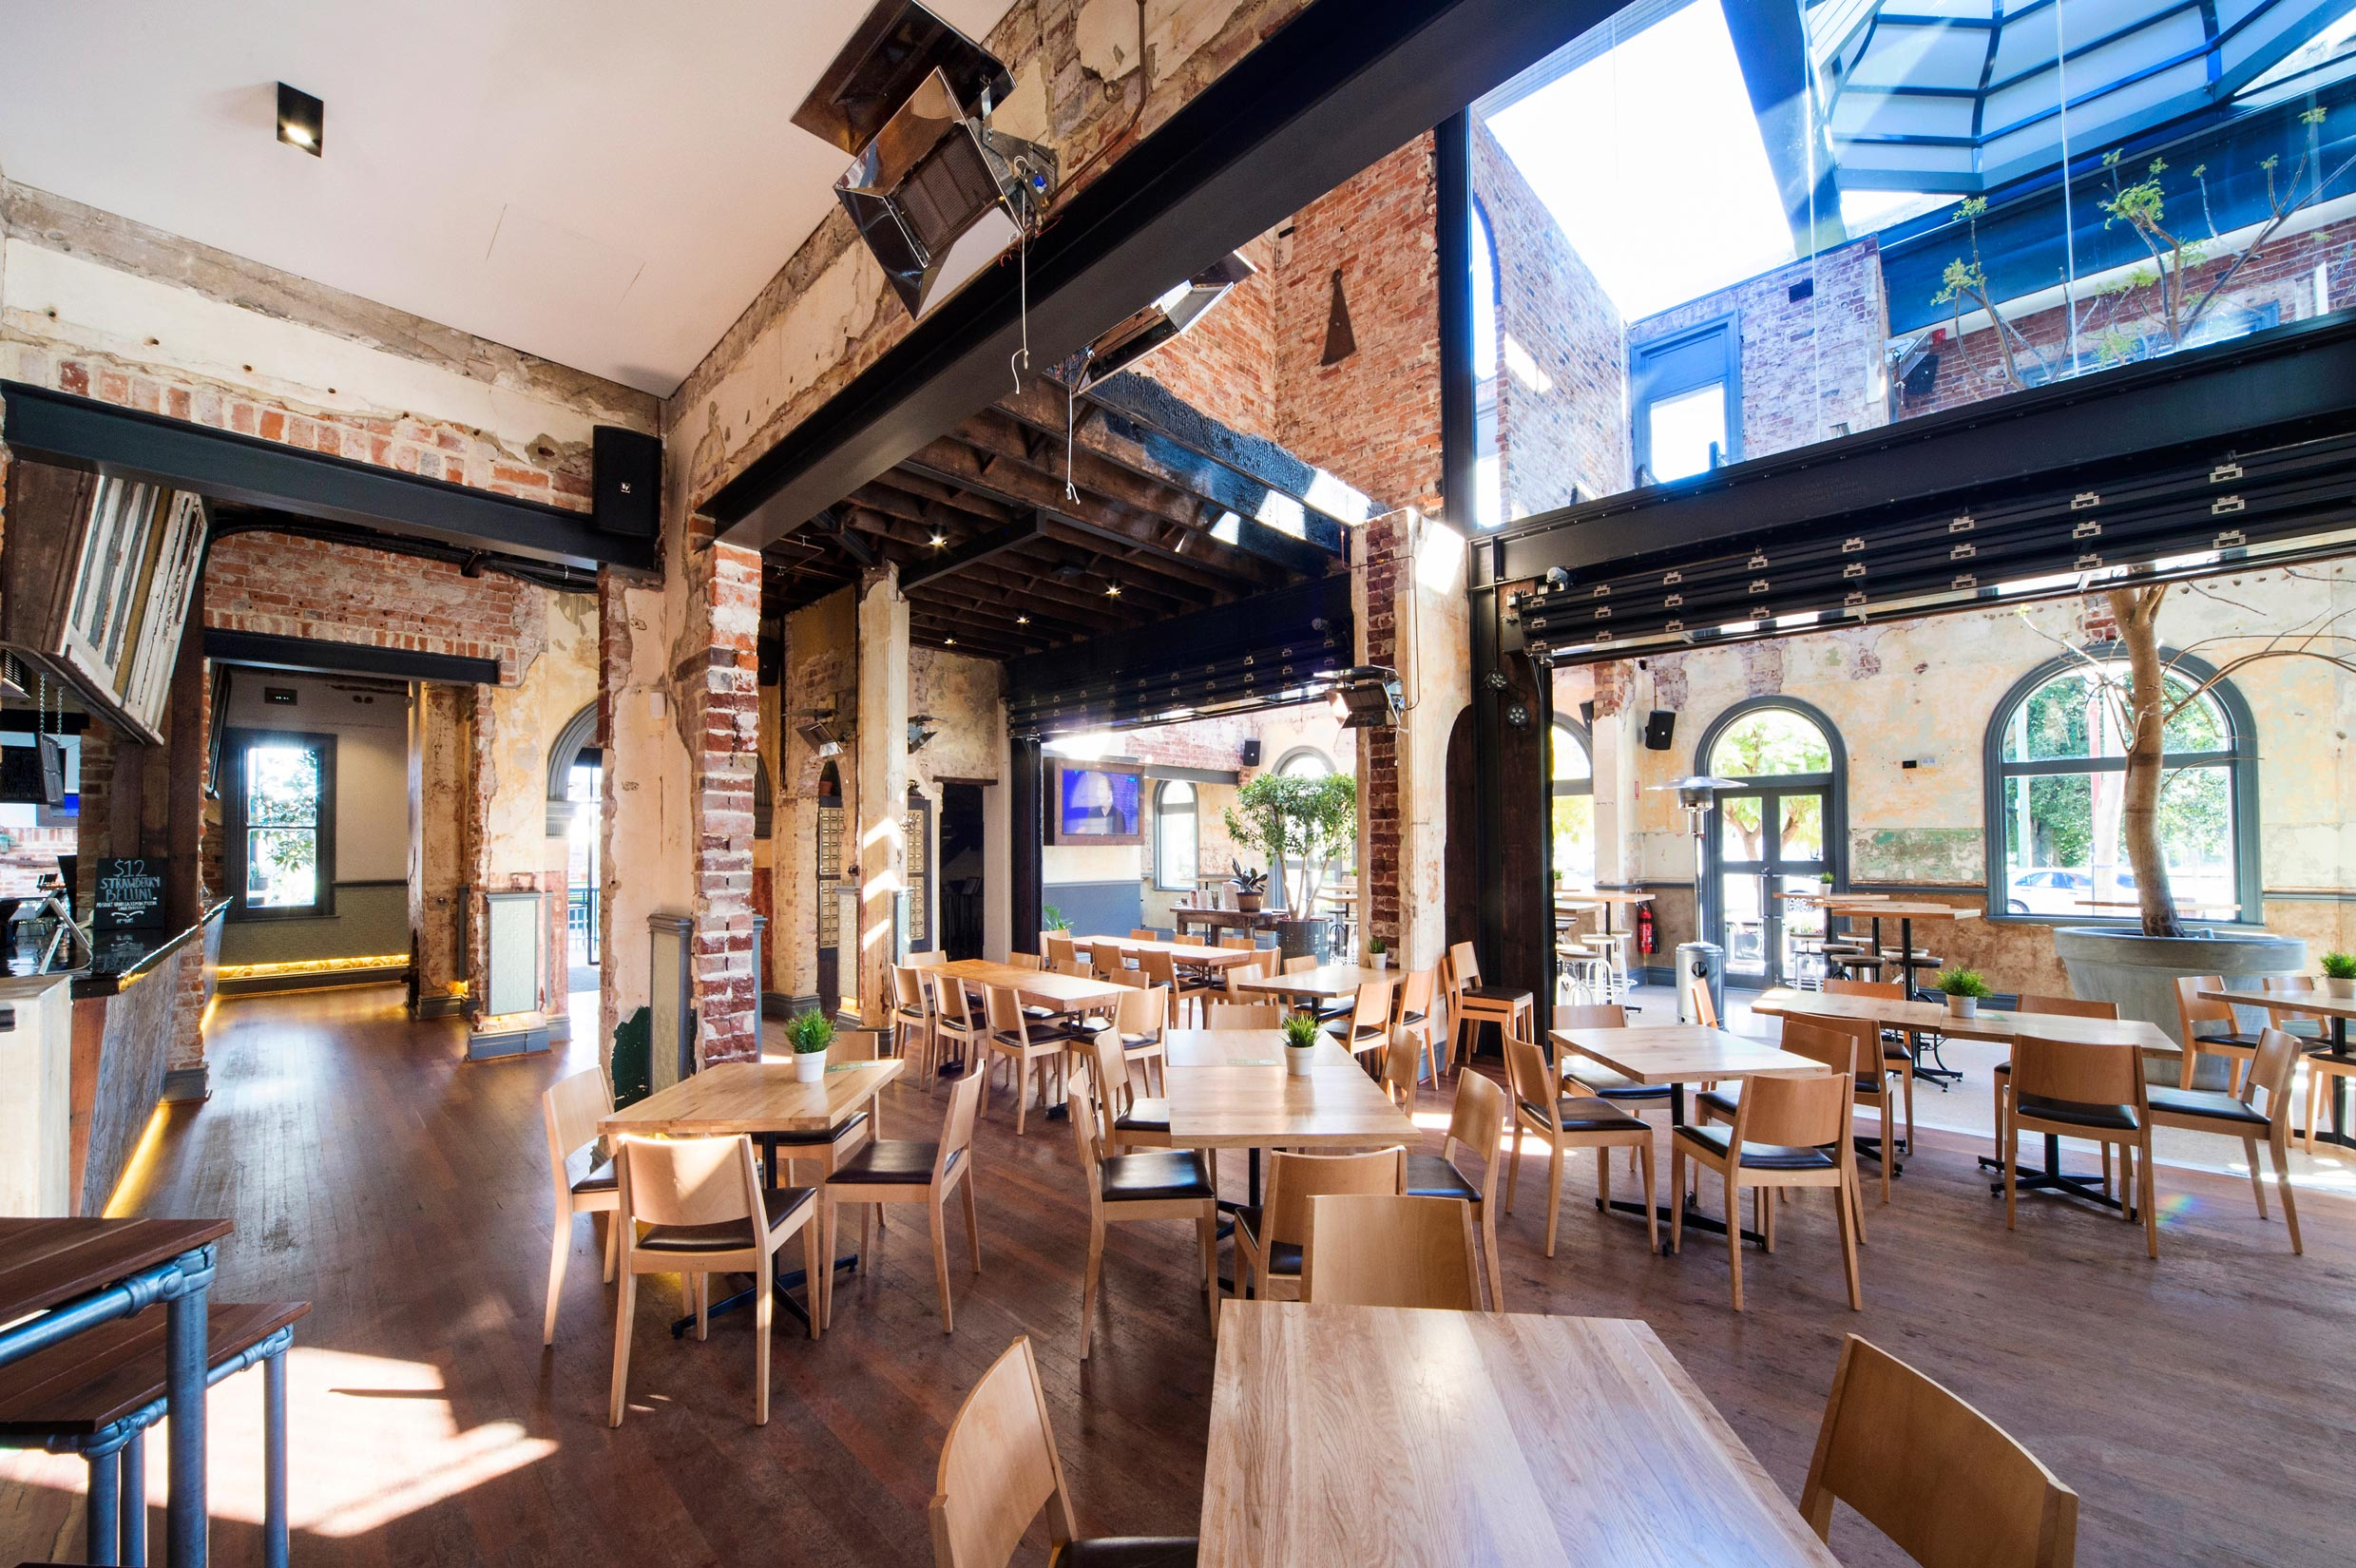 The Guildford Hotel heritage dining room with restored brick walls, steel beams and timber floors